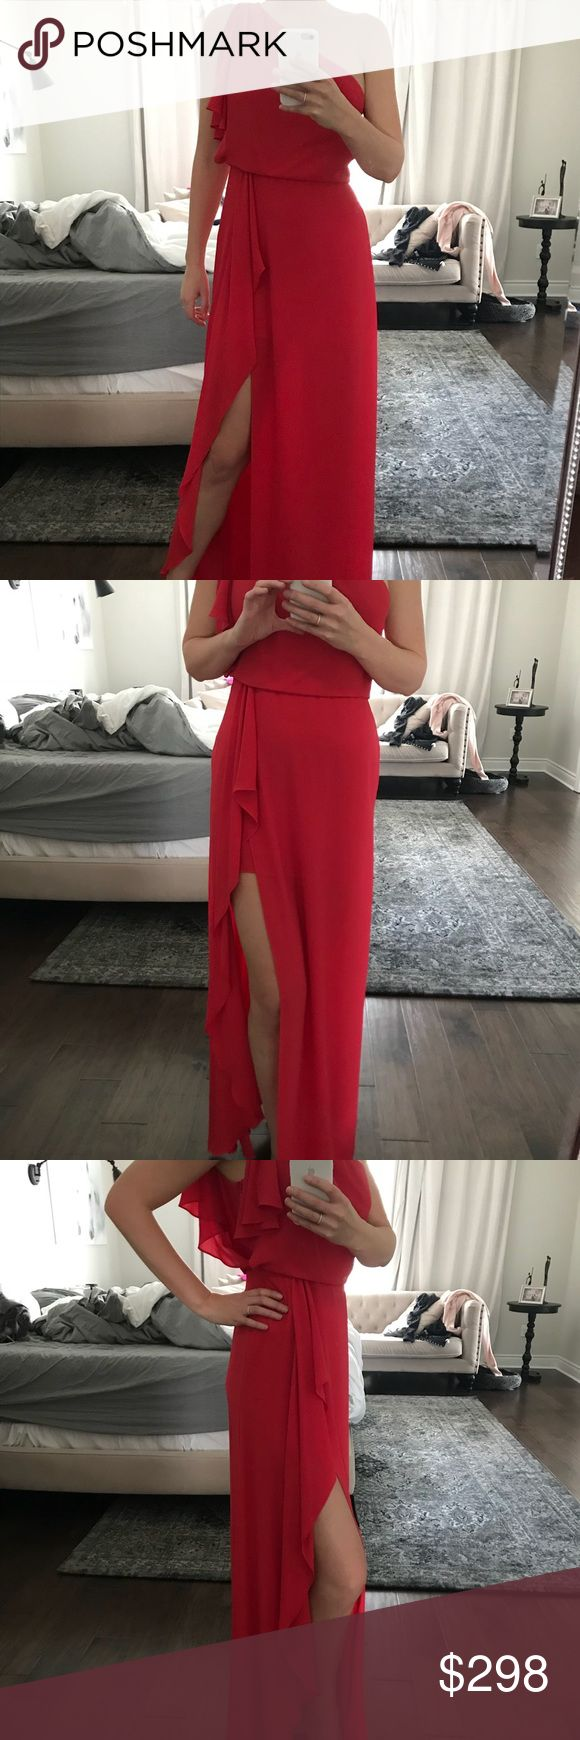 BCBG gown Beautiful BCBG red gown. Worn once. Excellent condition. Side zipper, high slit and very comfortable. BCBG Dresses One Shoulder